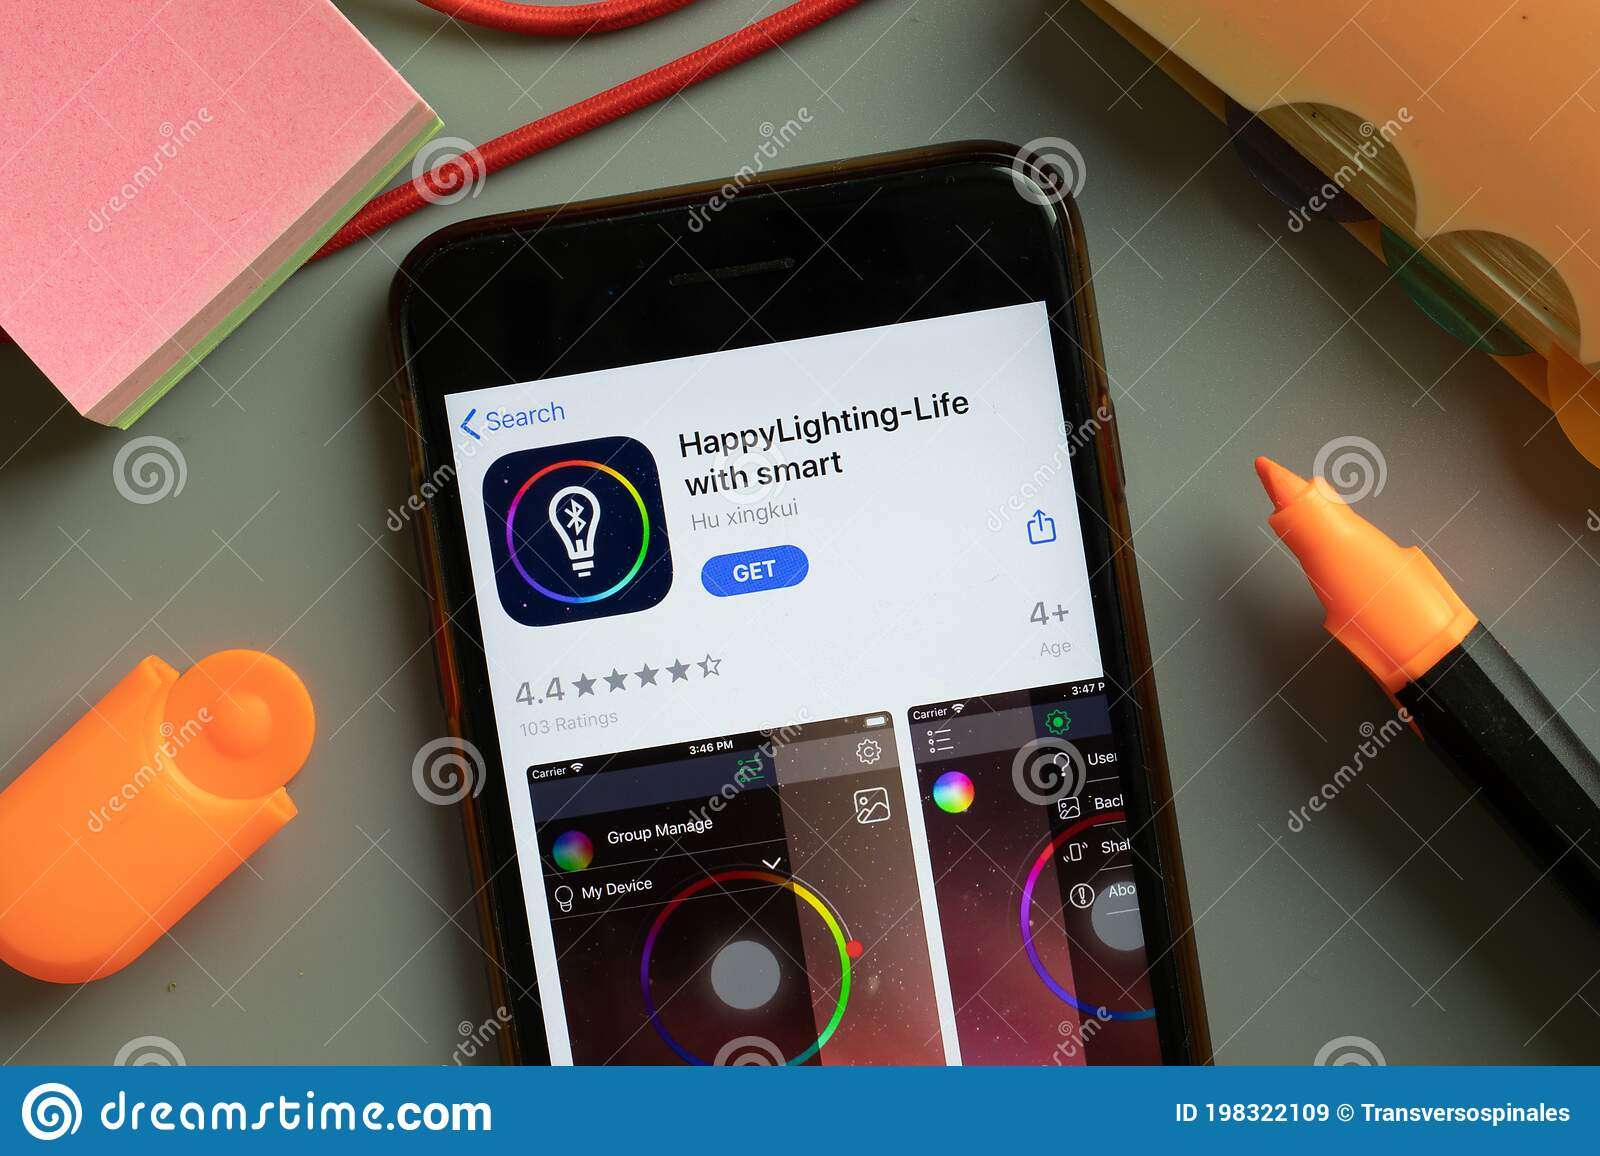 new york usa 29 september 2020 happylighting life with smart mobile app logo on phone screen close up illustrative editorial editorial stock image image of editorial illustrative 198322109